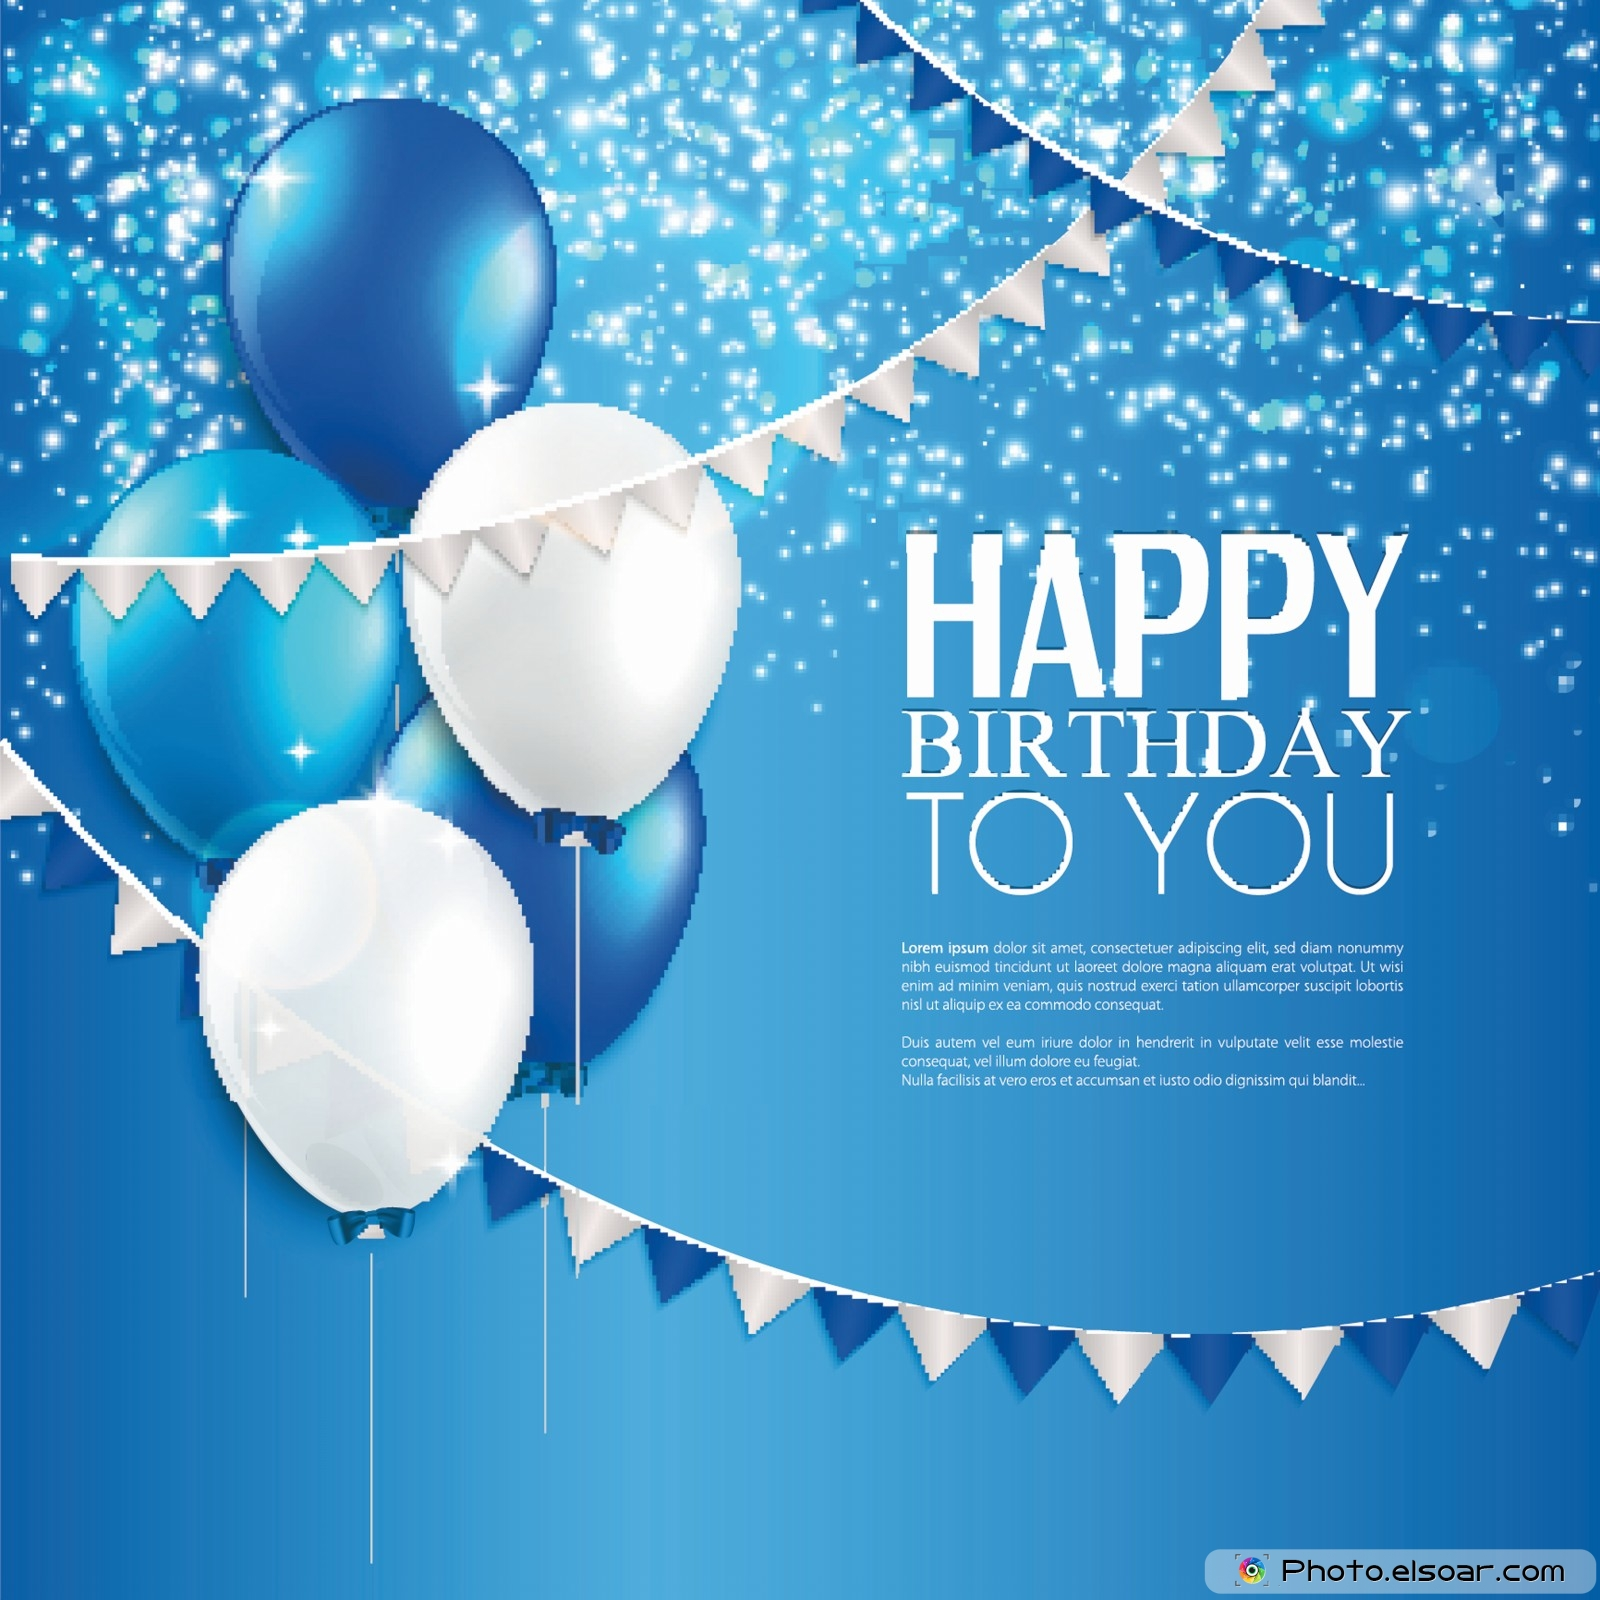 45 birthday wallpapers for men on wallpapersafari - Happy birthday card wallpaper ...